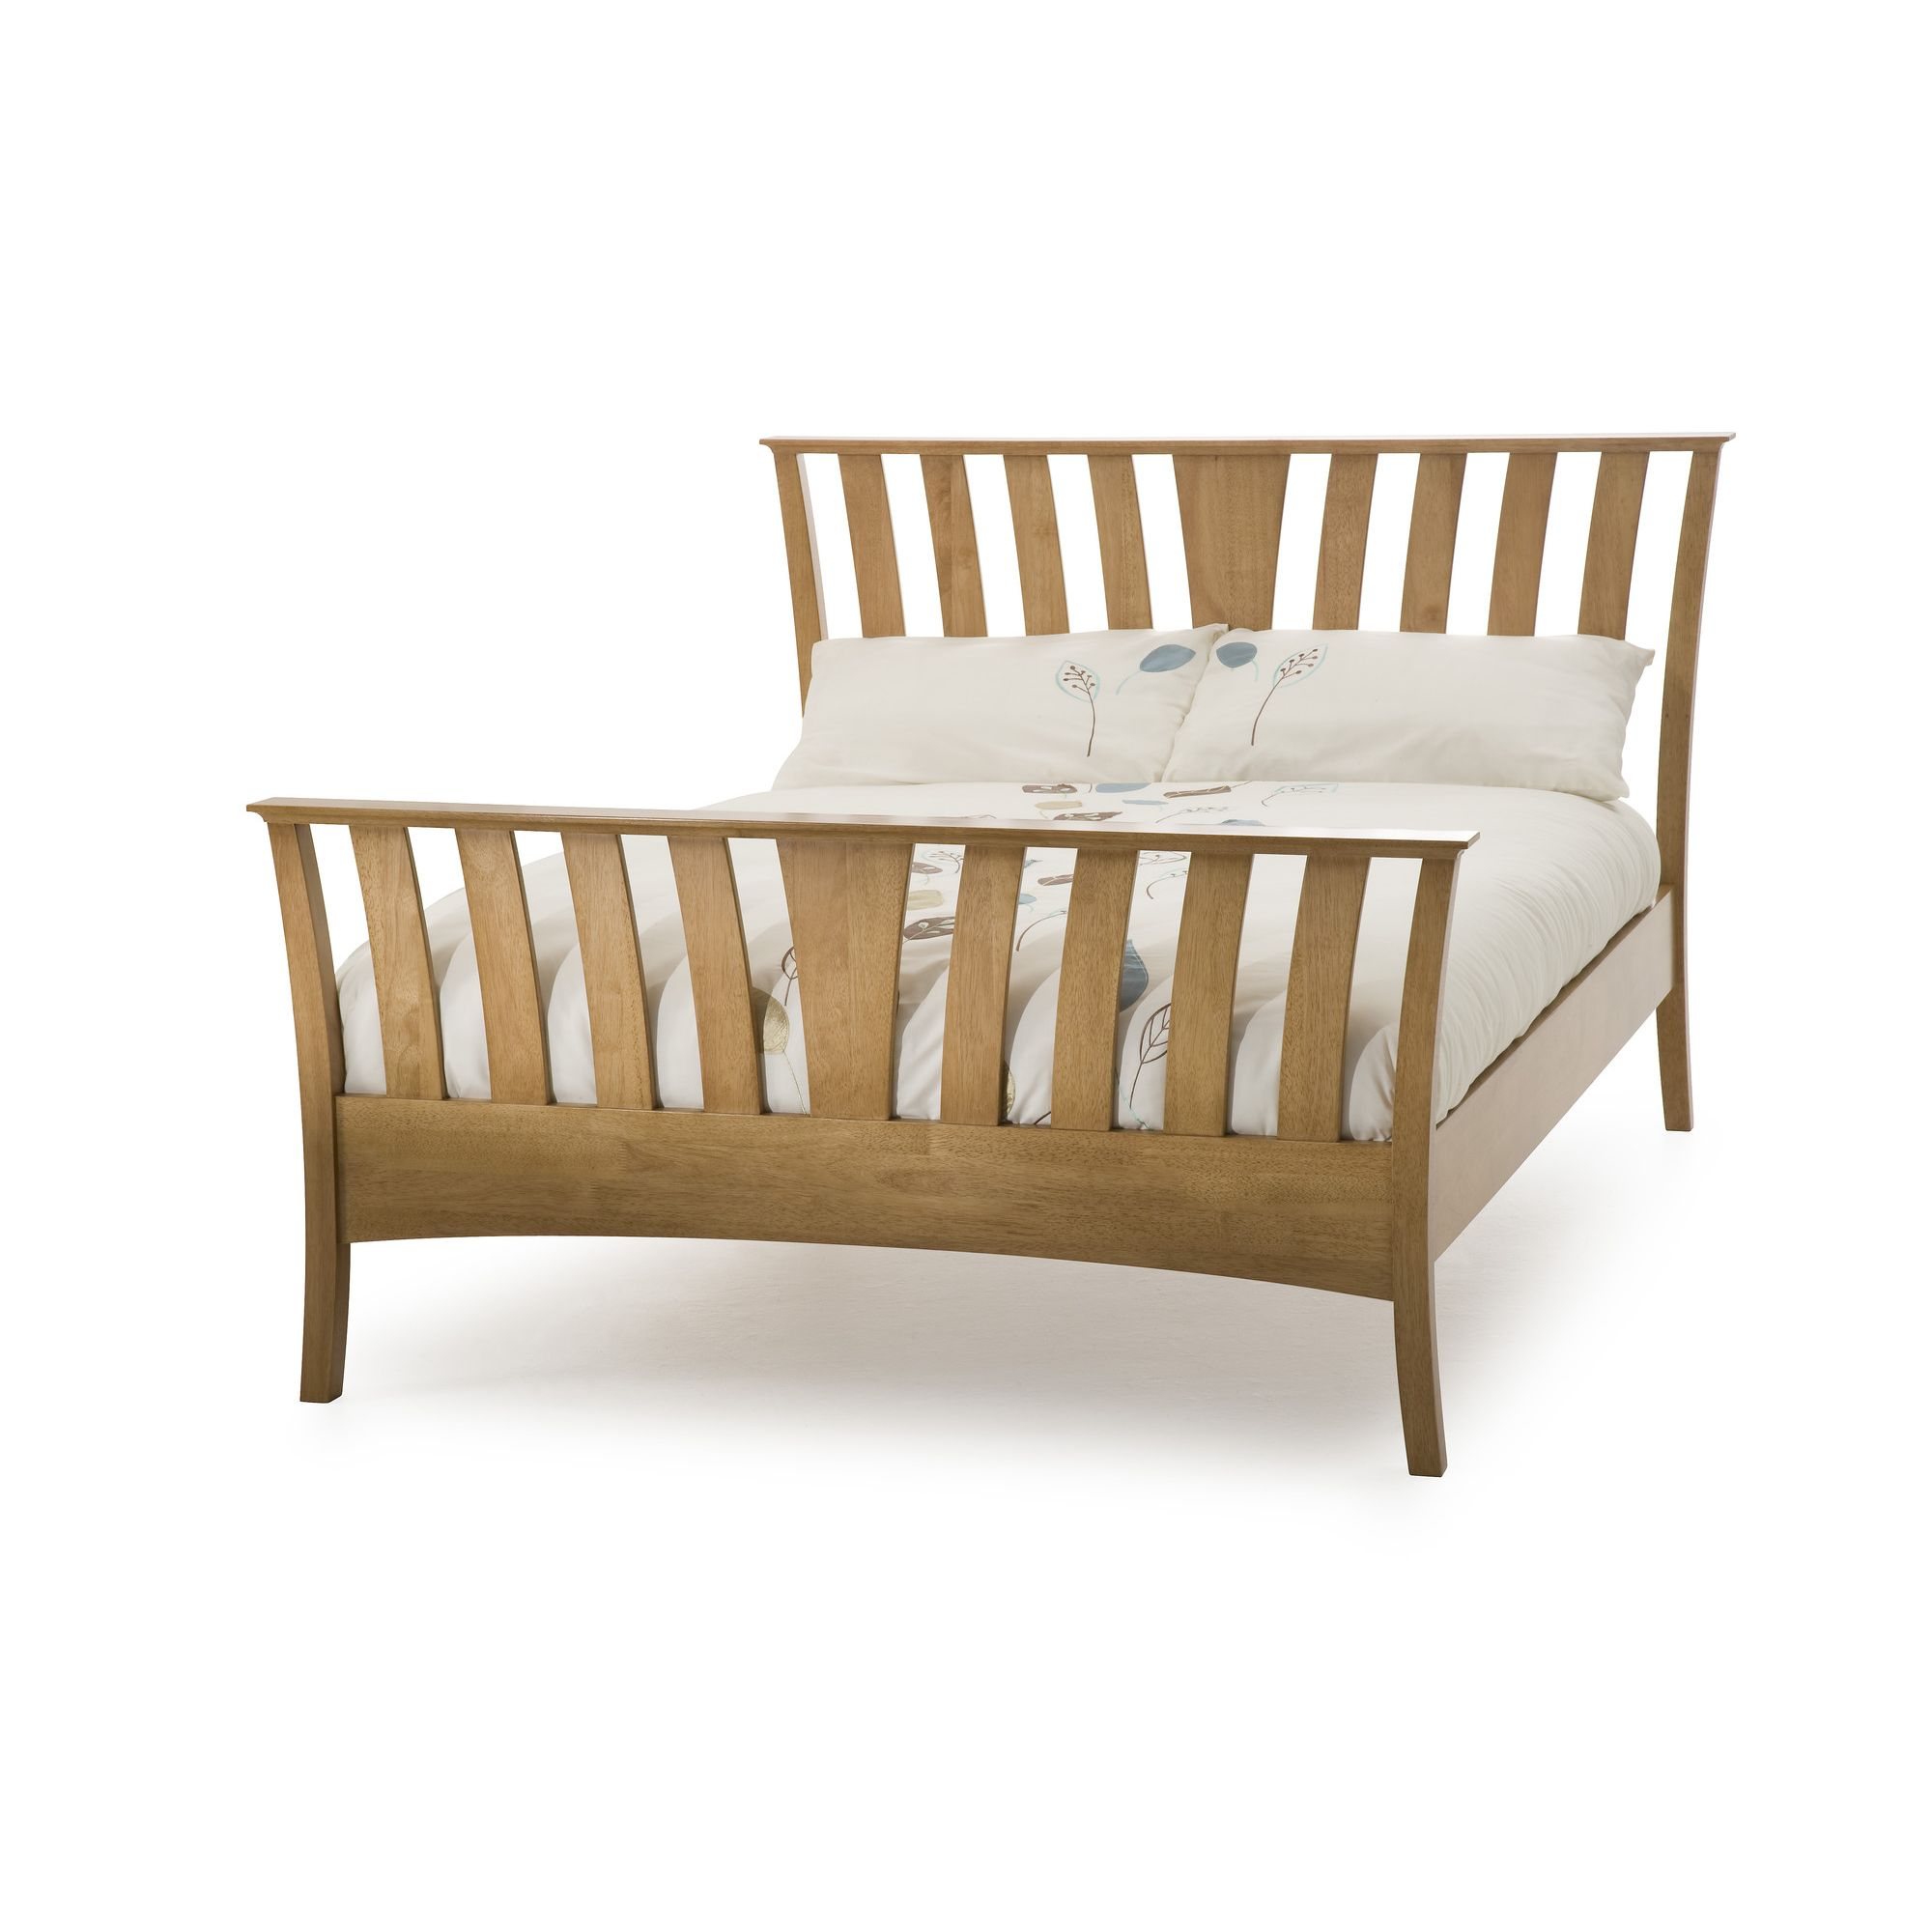 Serene Furnishings Ordelia Bed - Honey Oak - King at Tesco Direct